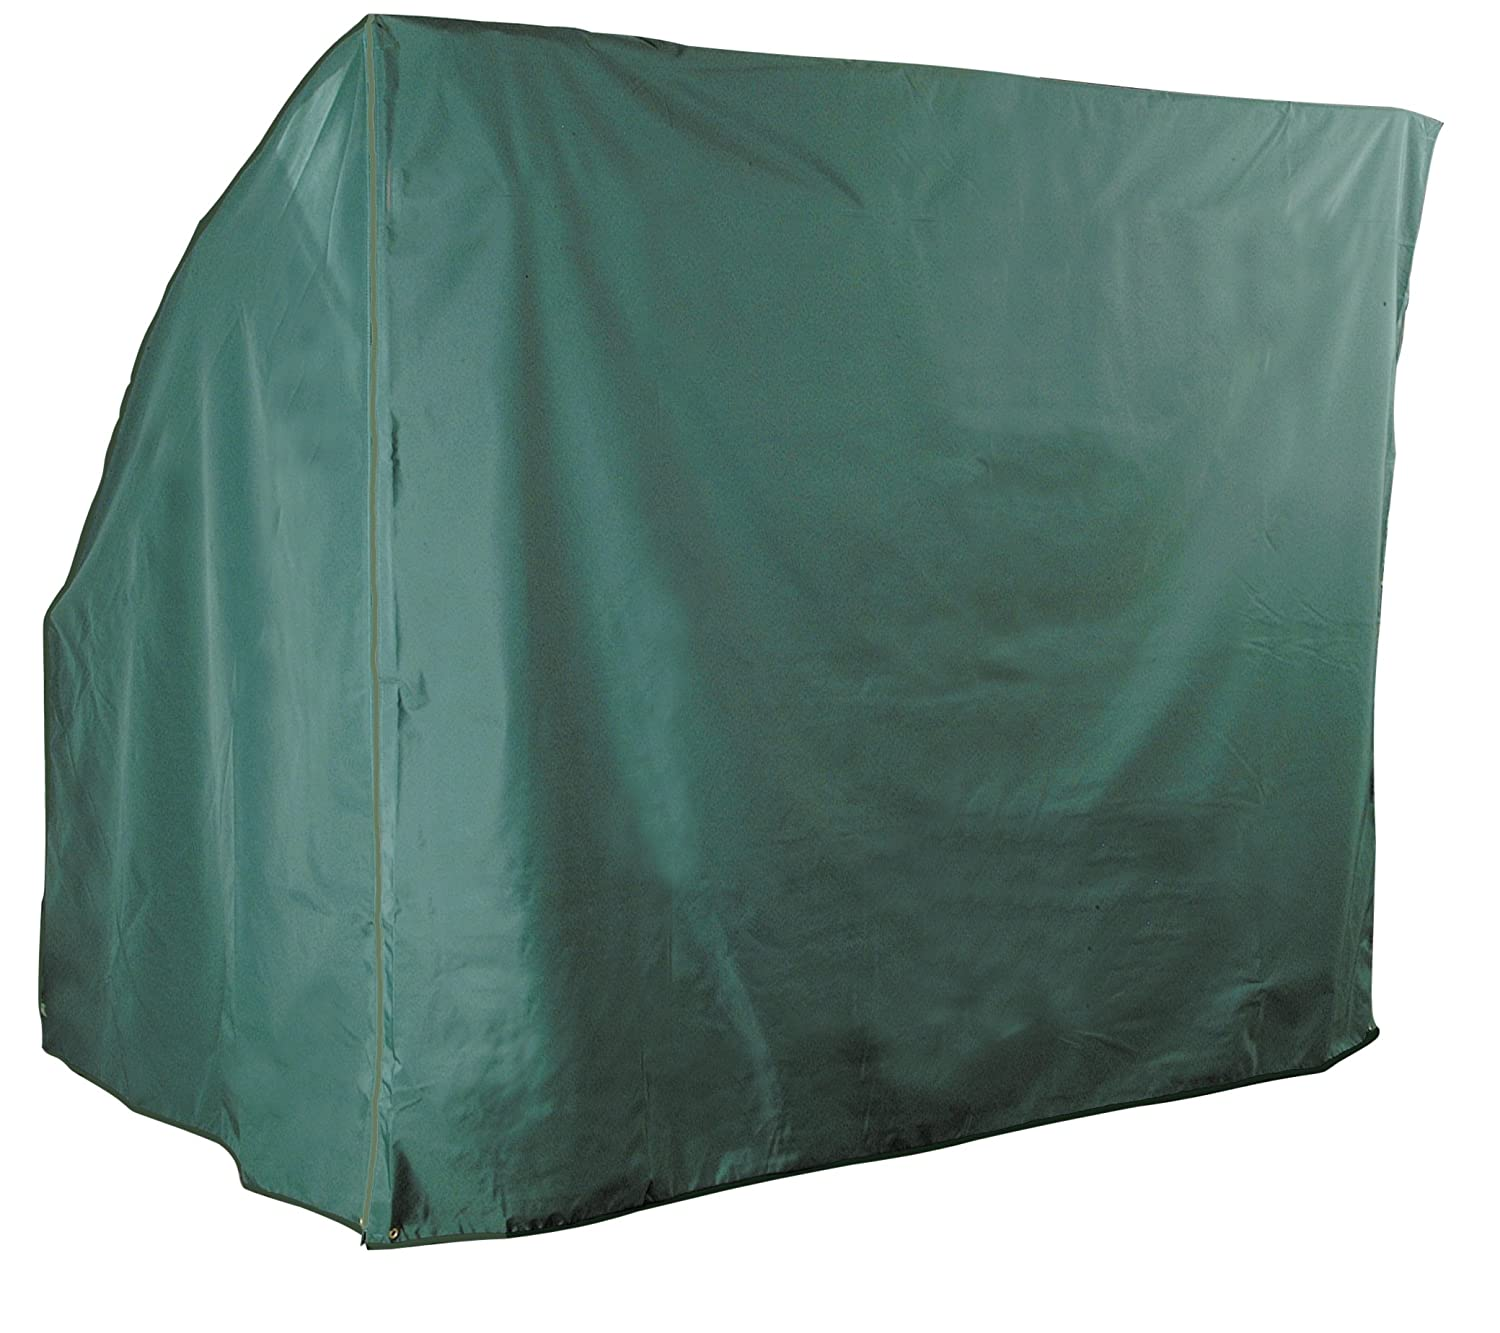 "Amazon Bosmere C510 Waterproof Swing Seat Cover 96"" x 57"" x"